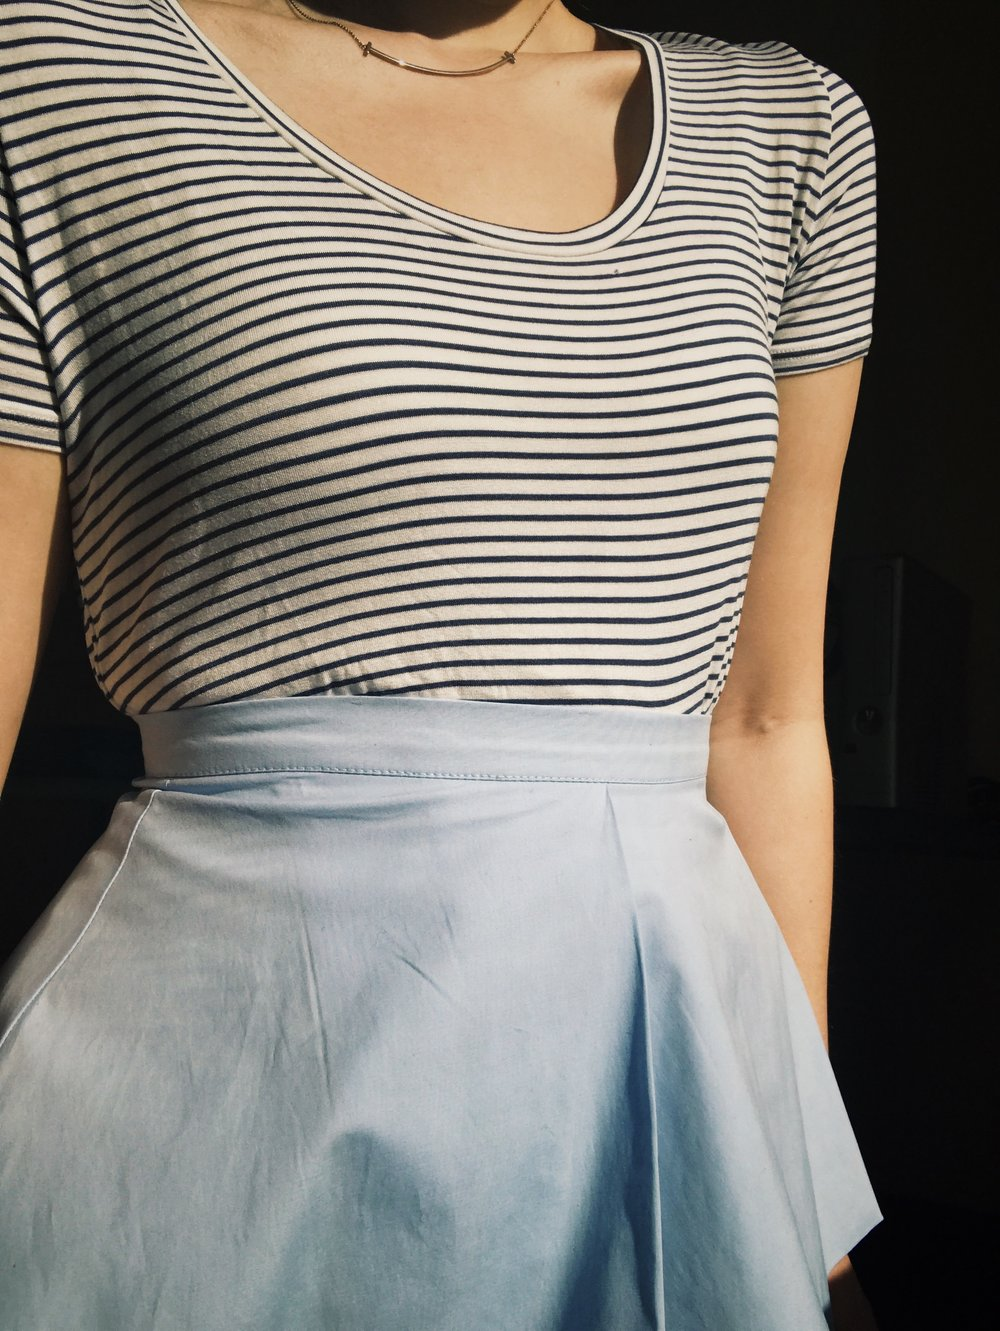 Blue skirt and hardy stripe